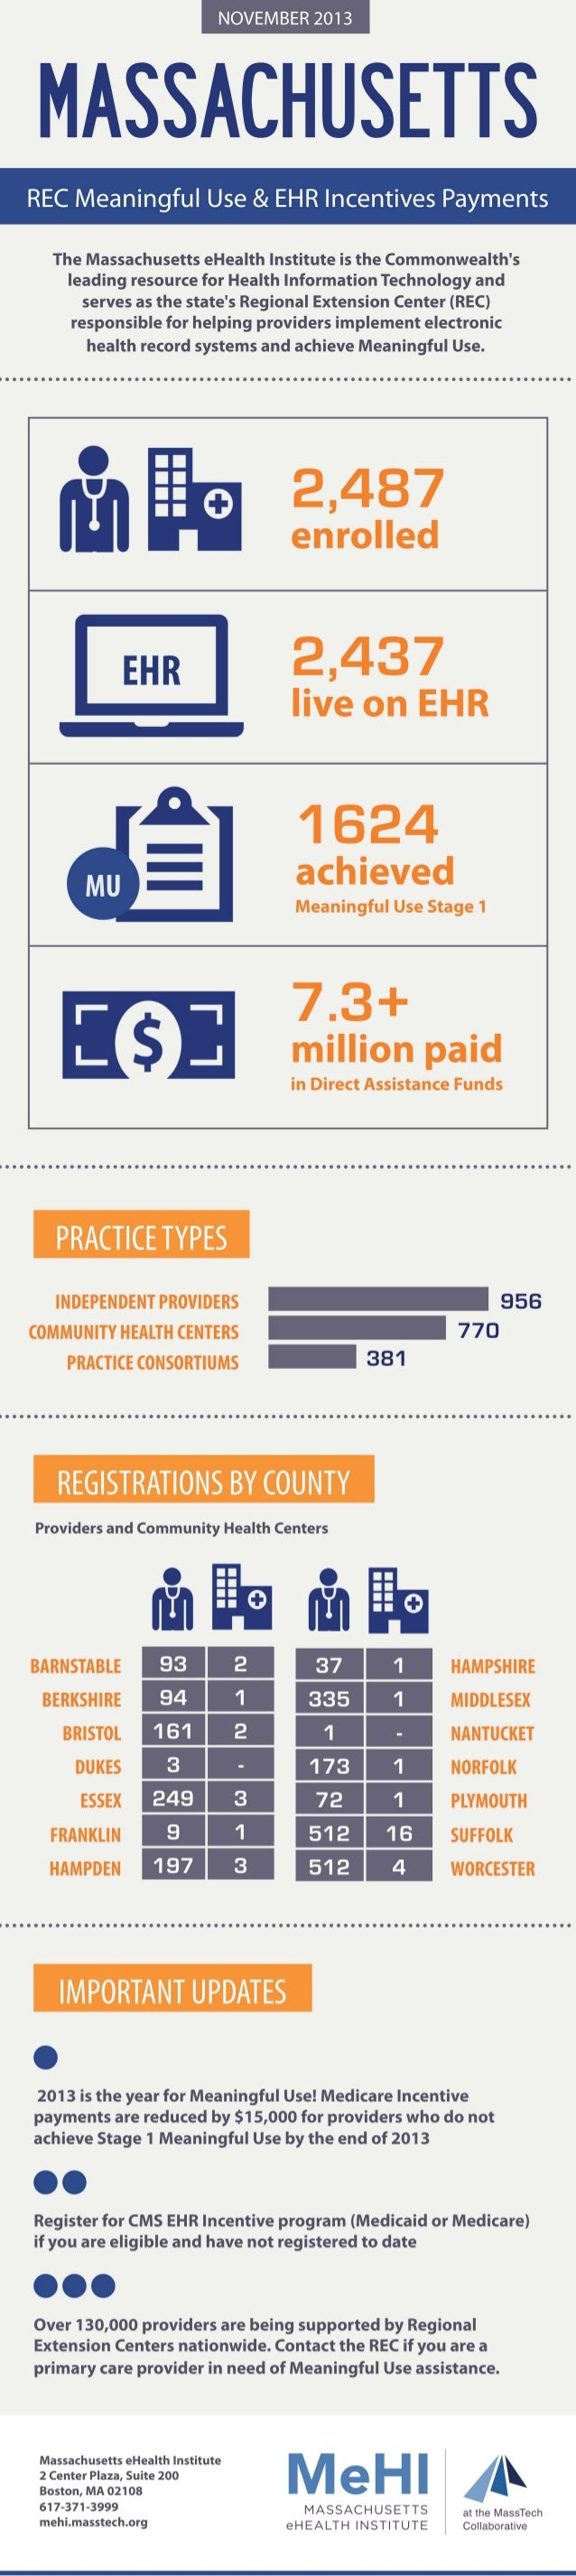 MeHI REC Meaningful Use & EHR Incentives Payments Infographic